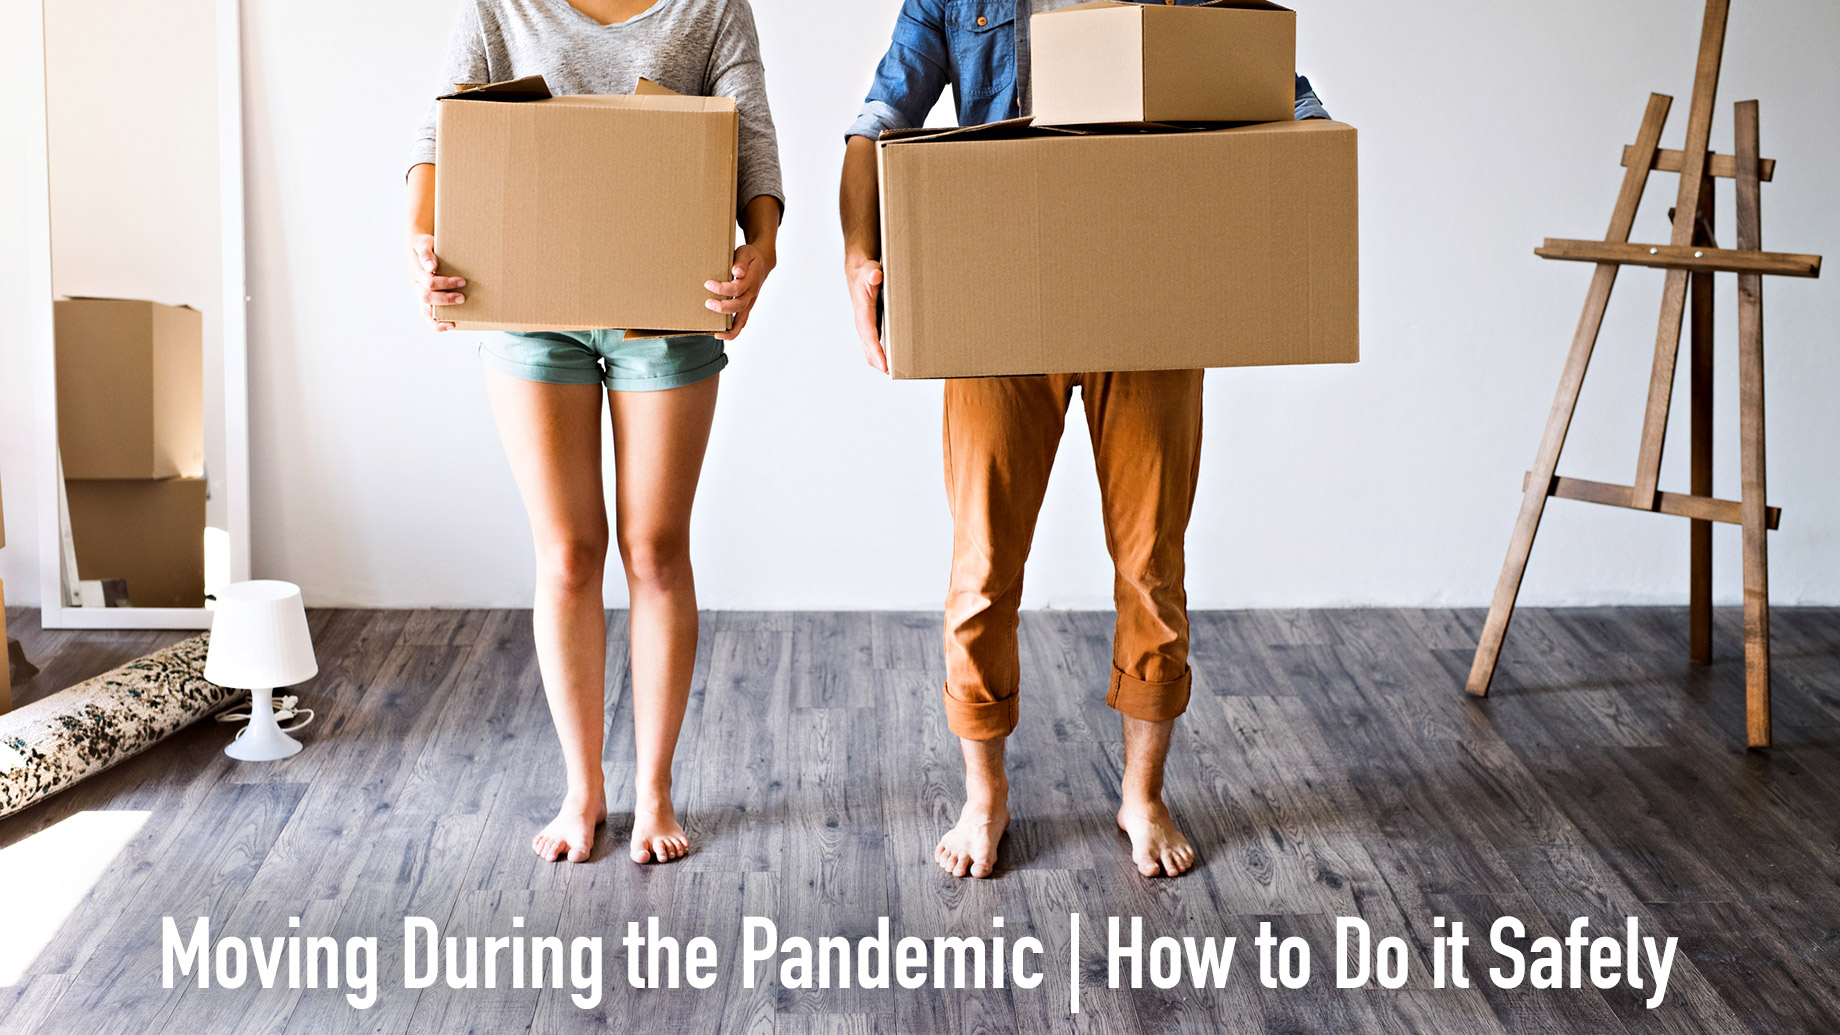 Moving During the Pandemic - How to Do it Safely